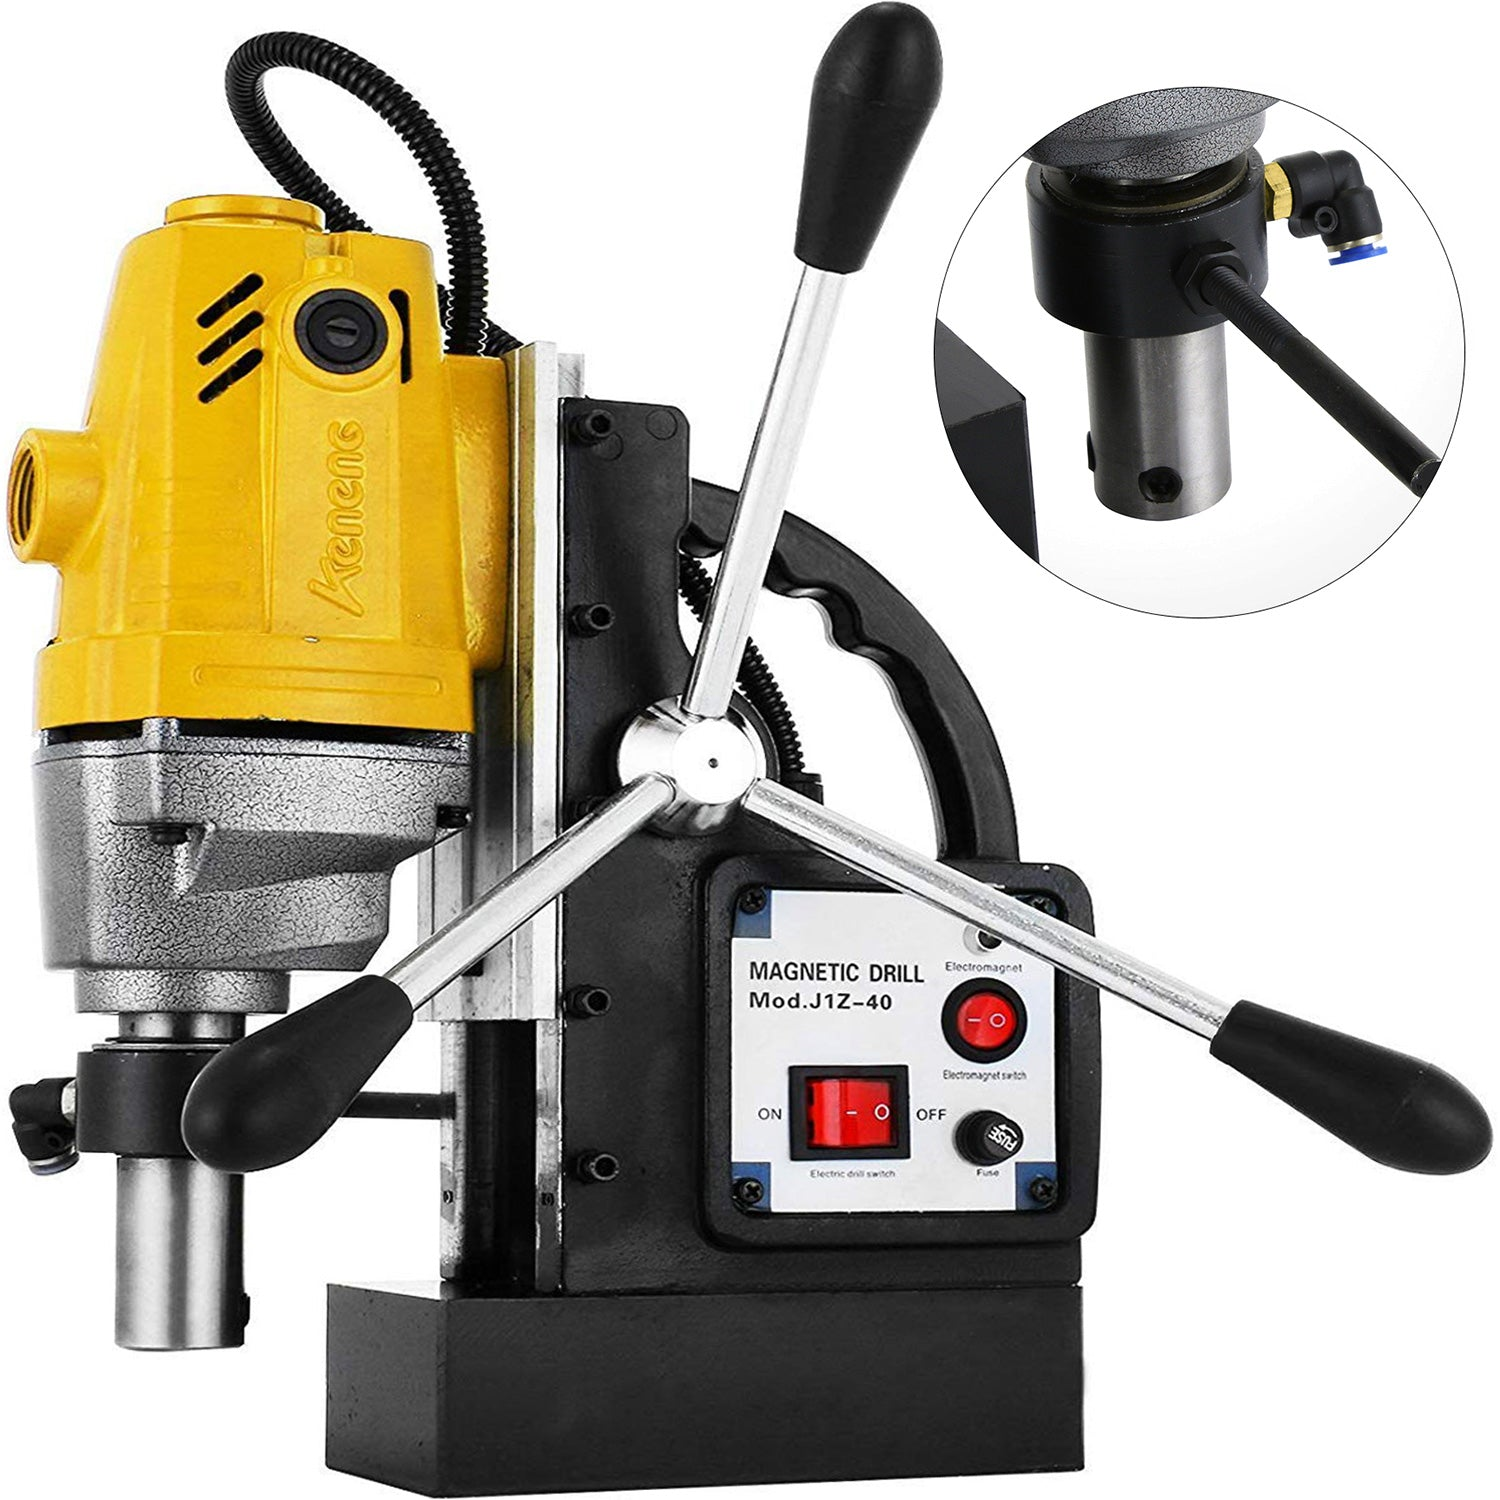 Md40 40mm Magnetic Drill Press 1100w Boring 2700 Lbs Magnet Force Tapping 1-1/2""